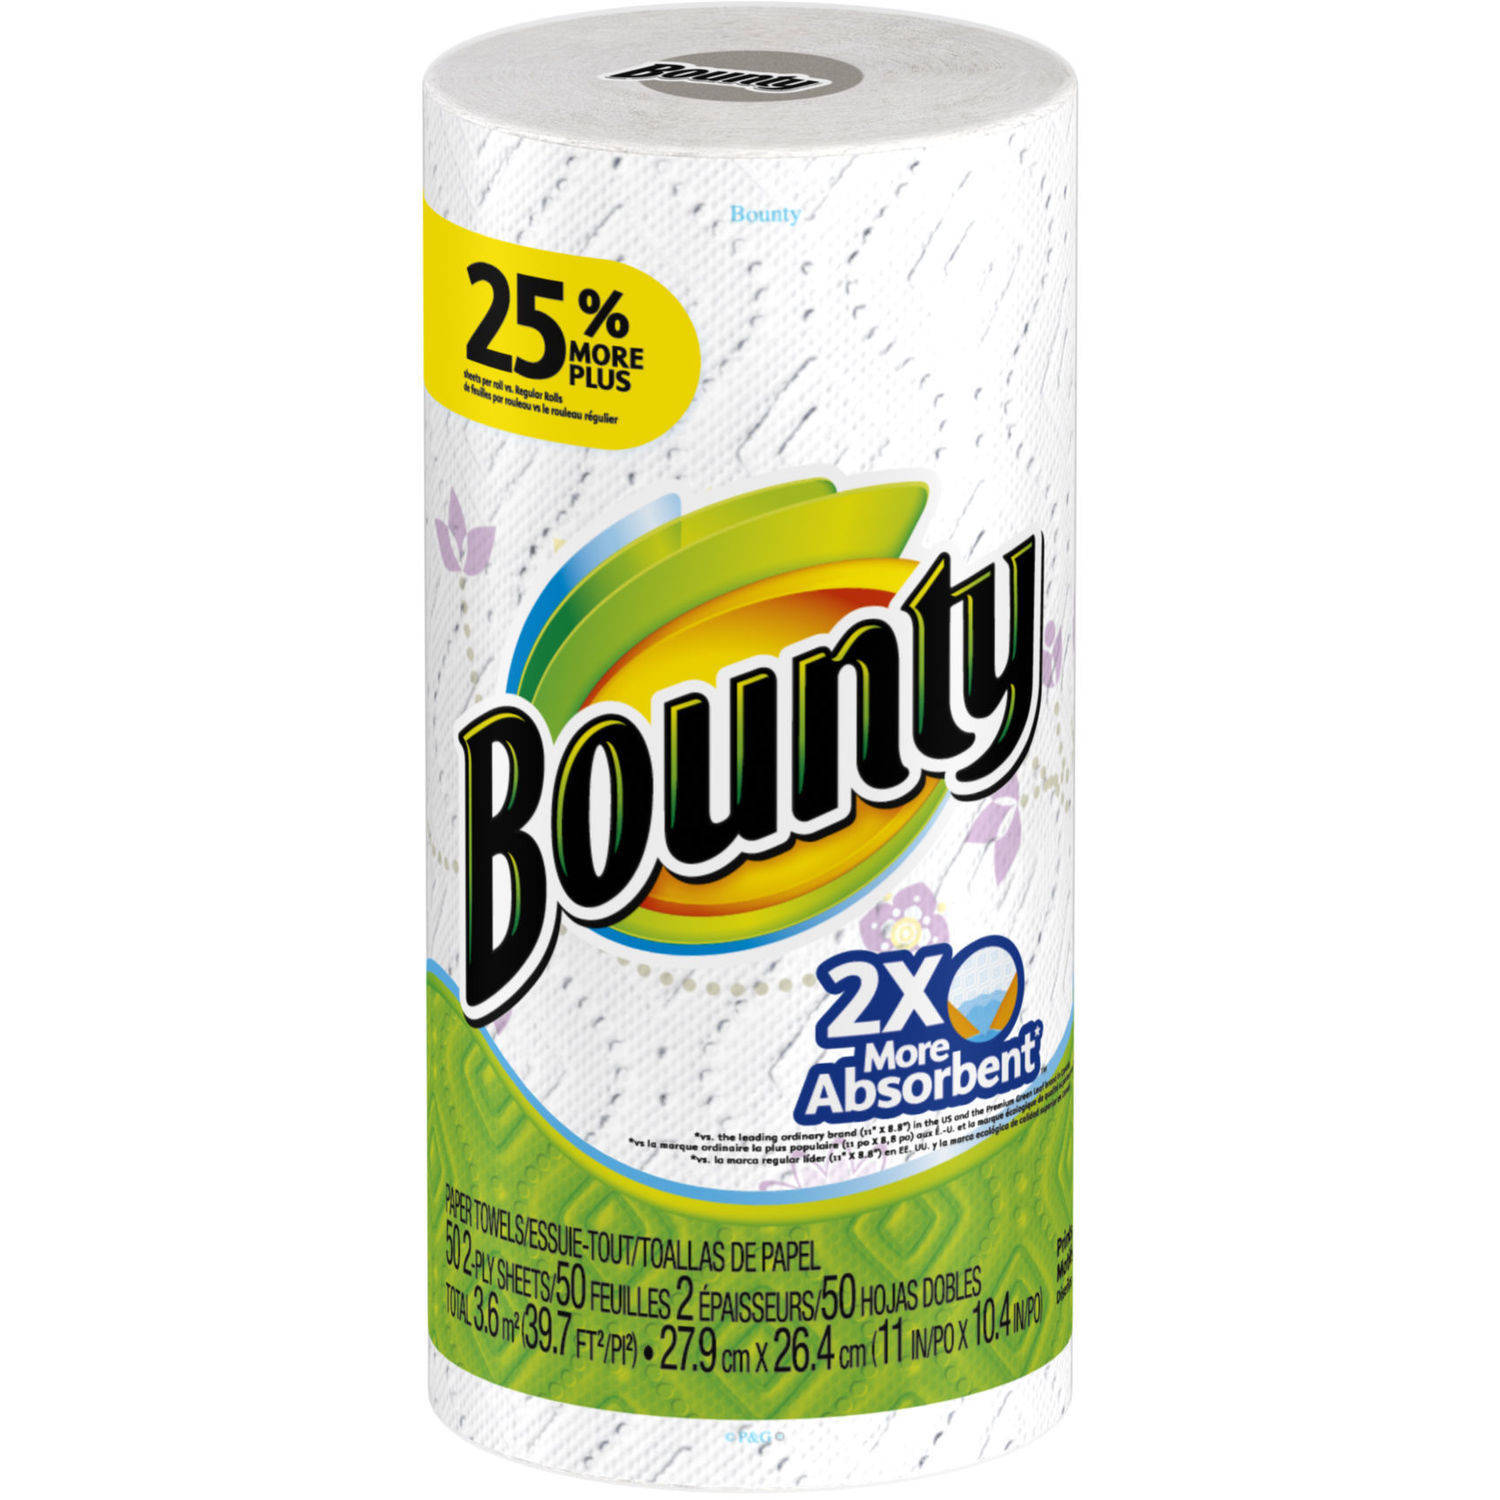 who makes bounty paper towels 28 images multimedia bounty news bounty basic white paper. Black Bedroom Furniture Sets. Home Design Ideas